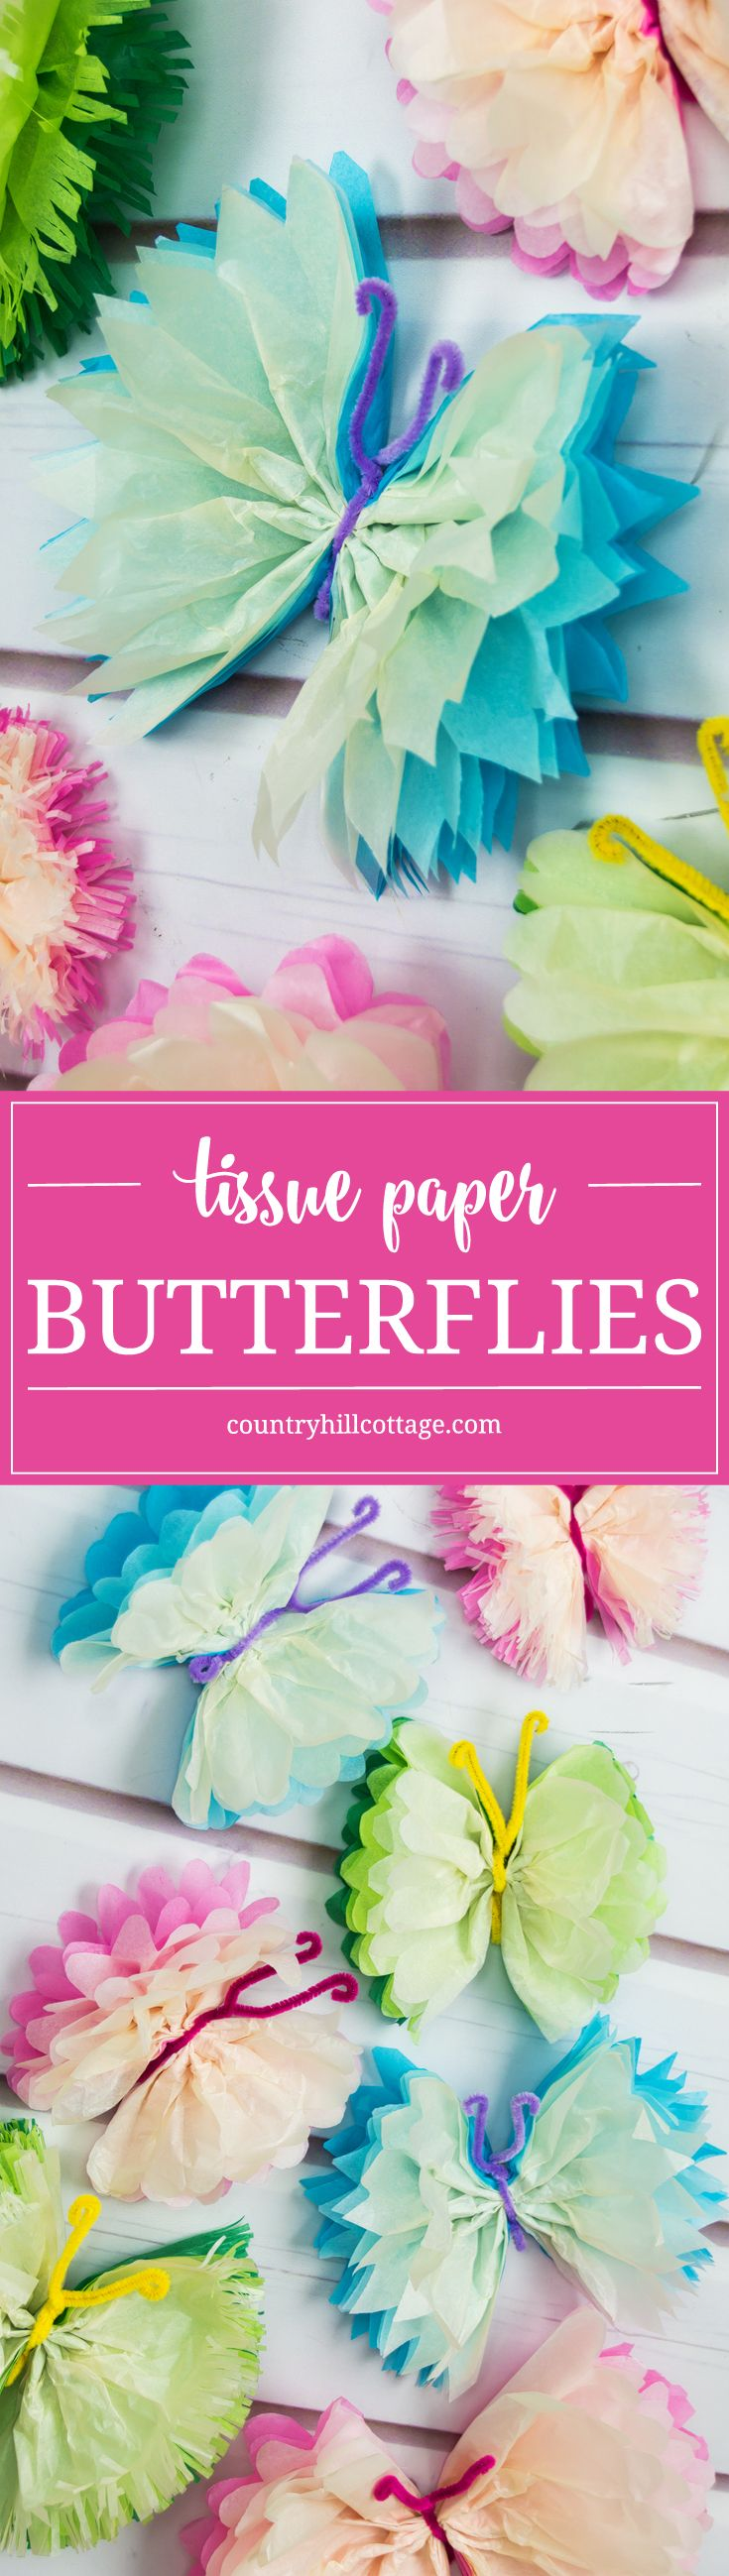 Diy simple and easy paper diy butterfly party decorations - Tissue Paper Butterflies Fun Paper Craft Diy Decorations For Partypaper